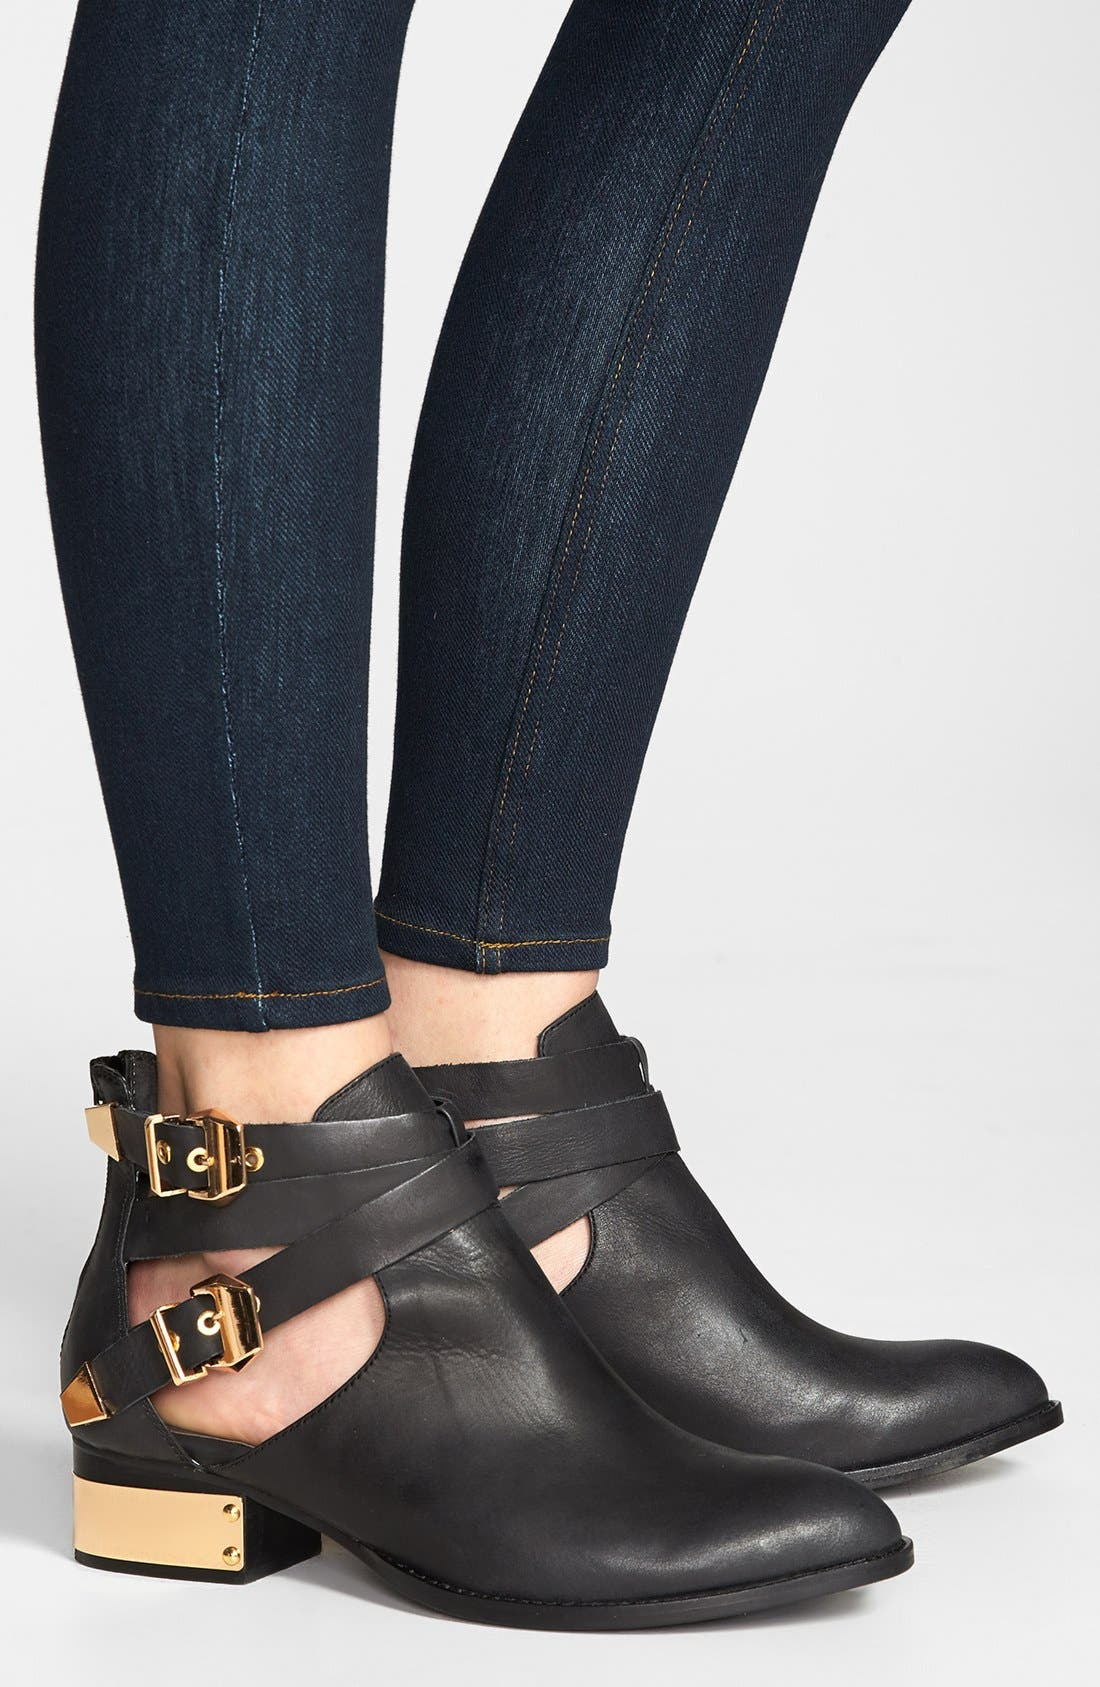 JEFFREY CAMPBELL,                             'Everly' Bootie,                             Alternate thumbnail 5, color,                             002